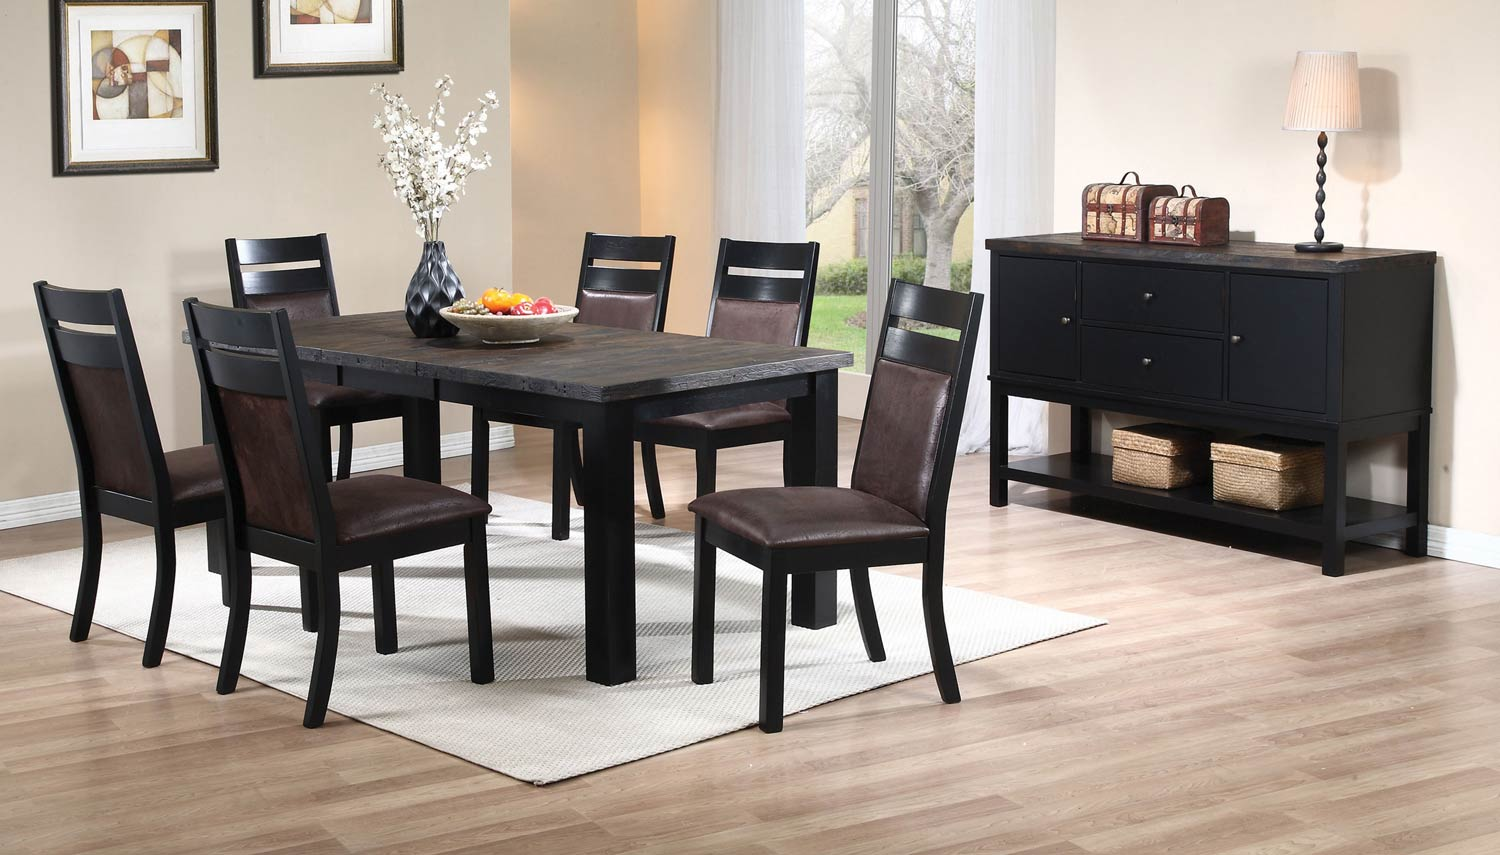 Coaster Arlington Dining Set - Wire Brushed Oak/Antique Black